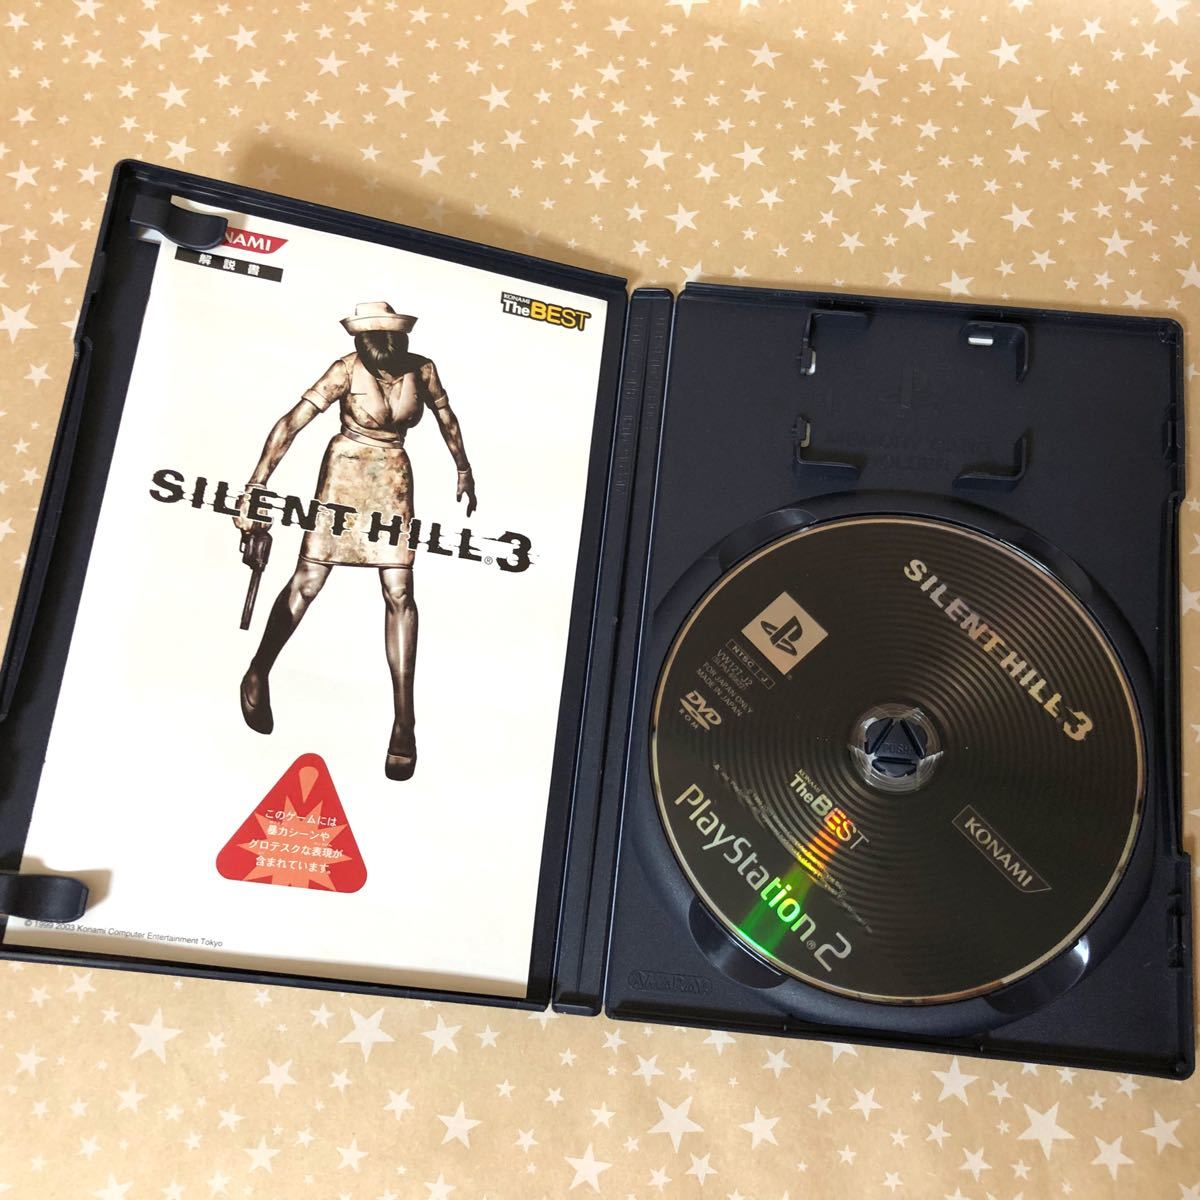 PS2ソフト サイレントヒル3